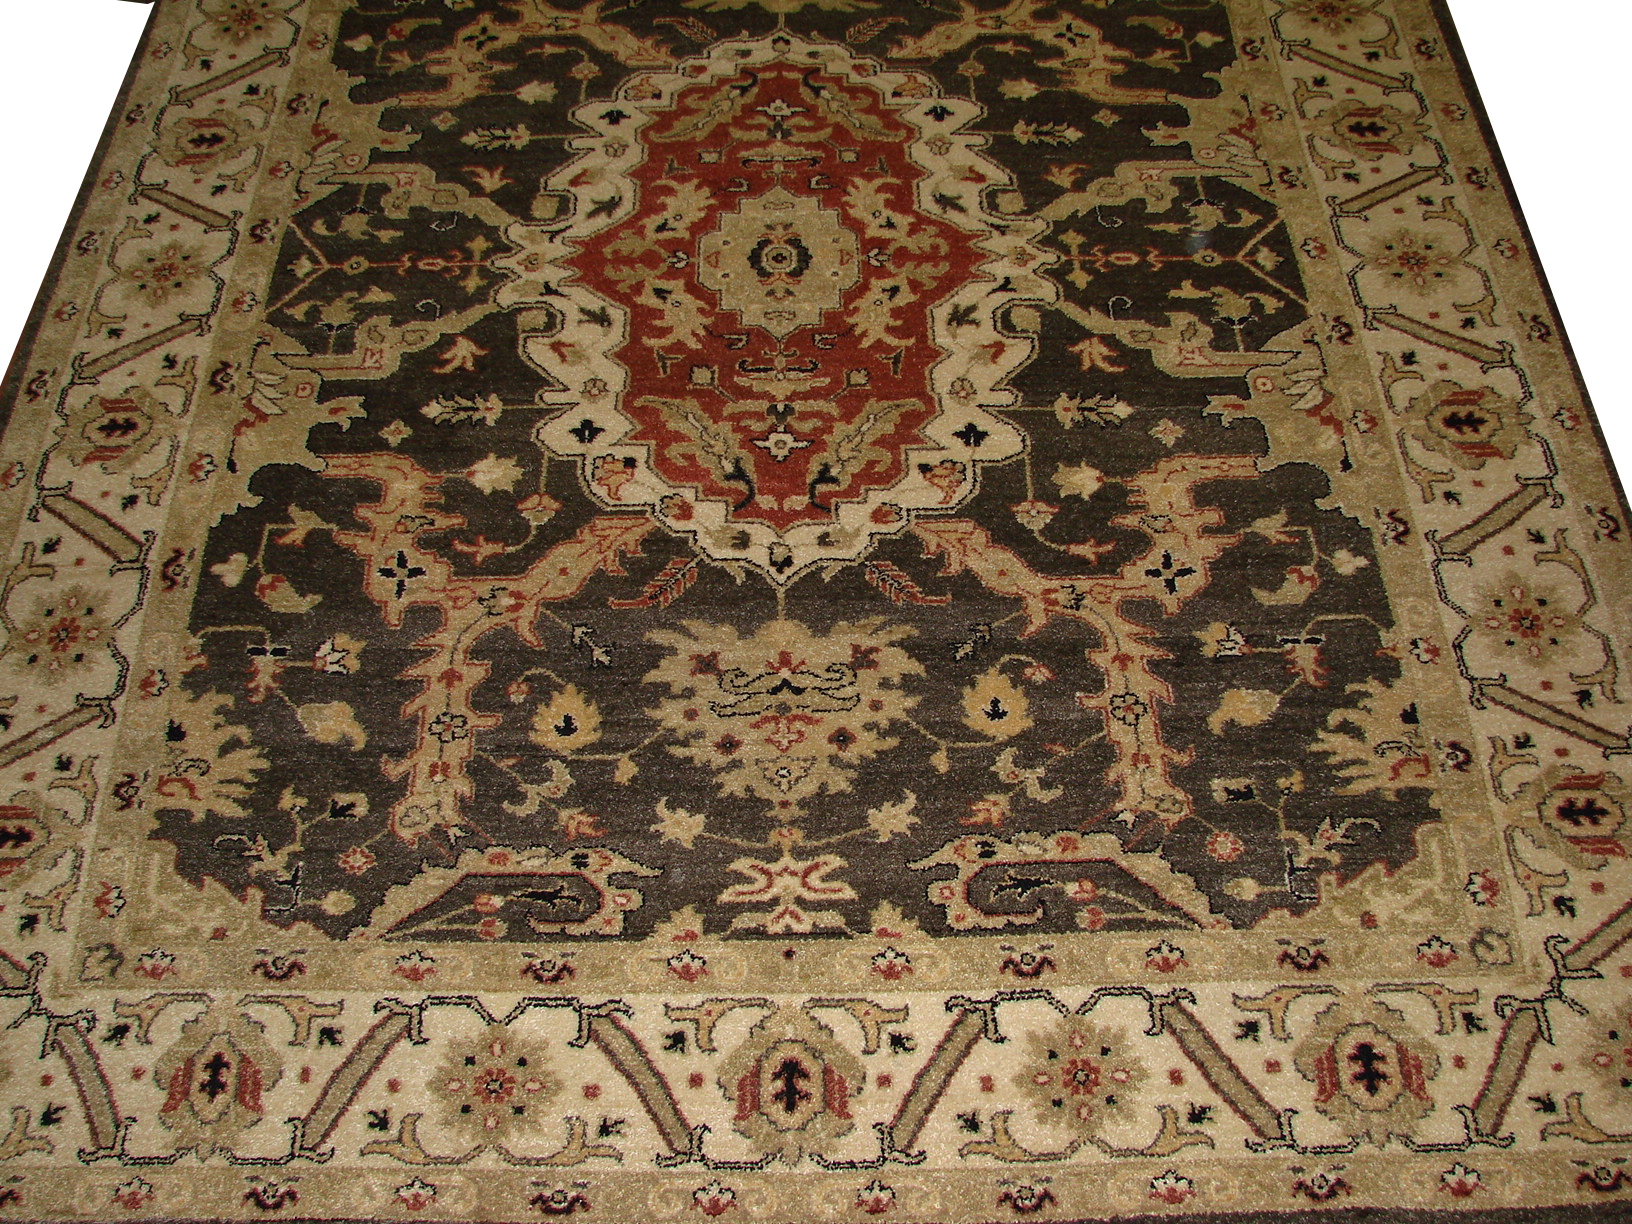 8x10 Traditional Hand Knotted Wool Area Rug - MR8235